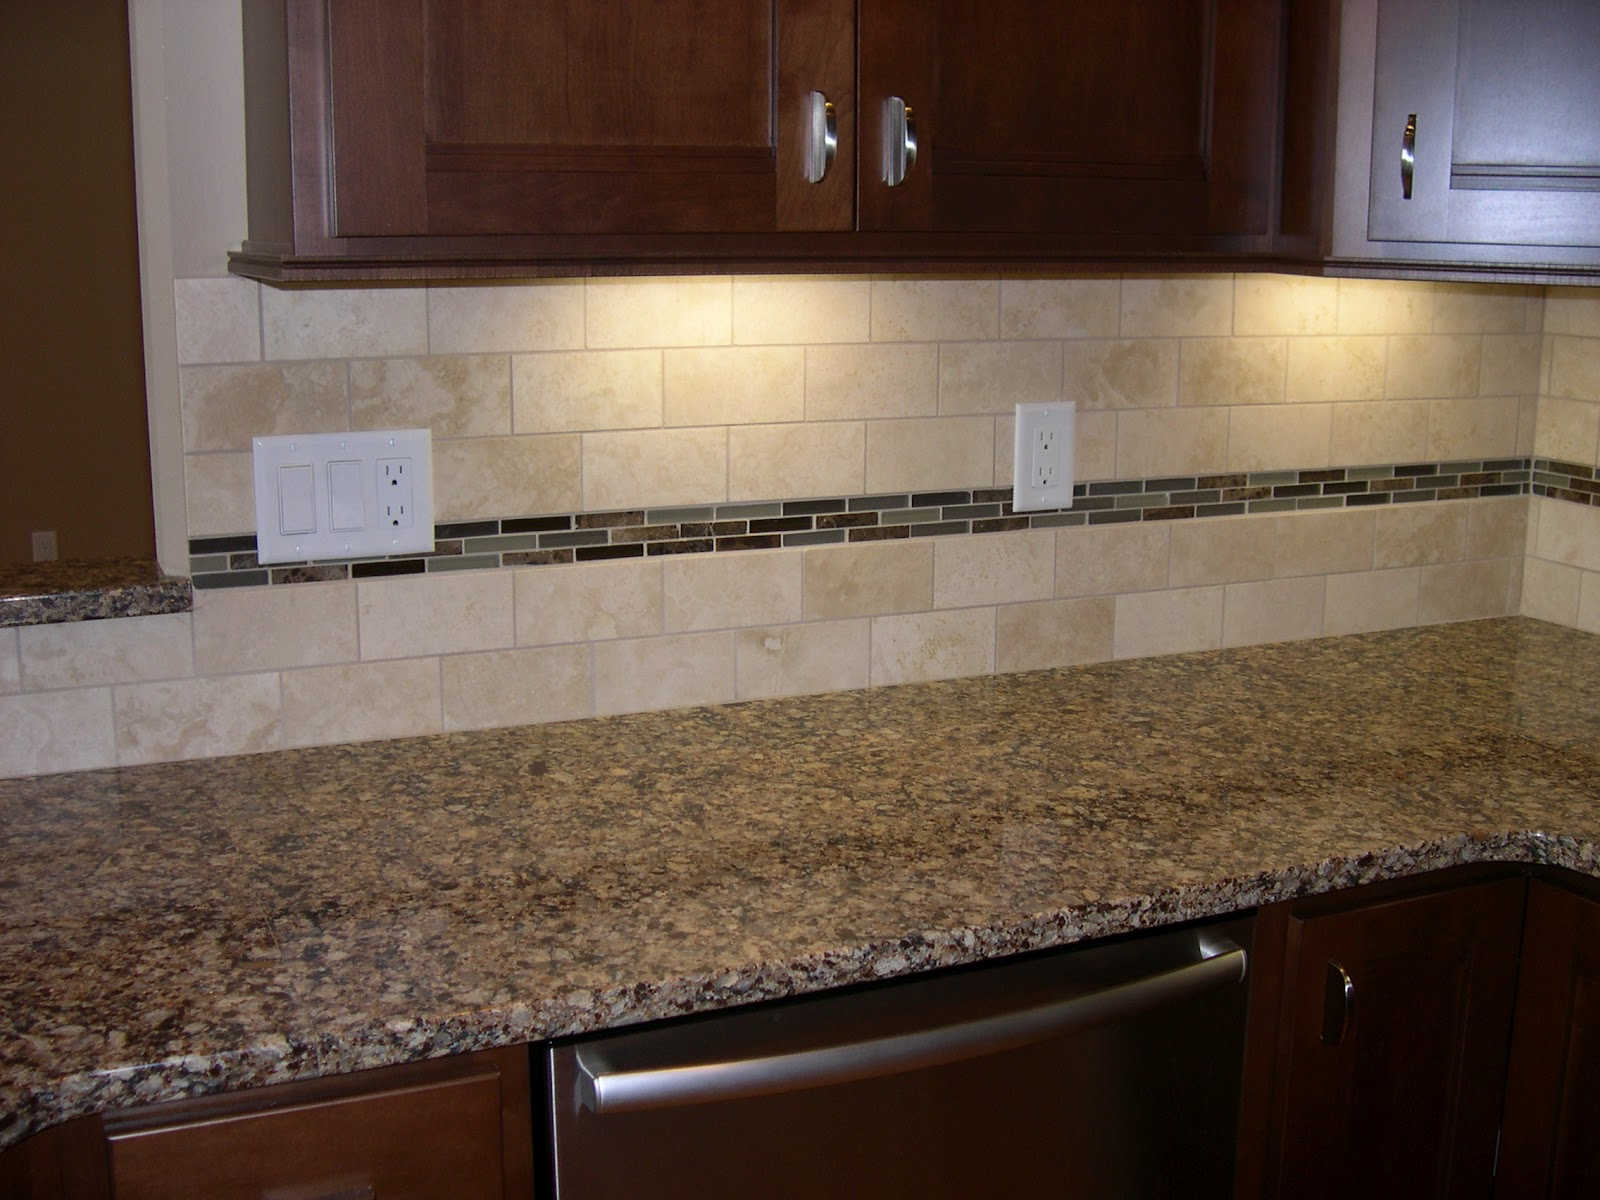 Jill tentinger june 2012 - Kitchen backsplash tile ...